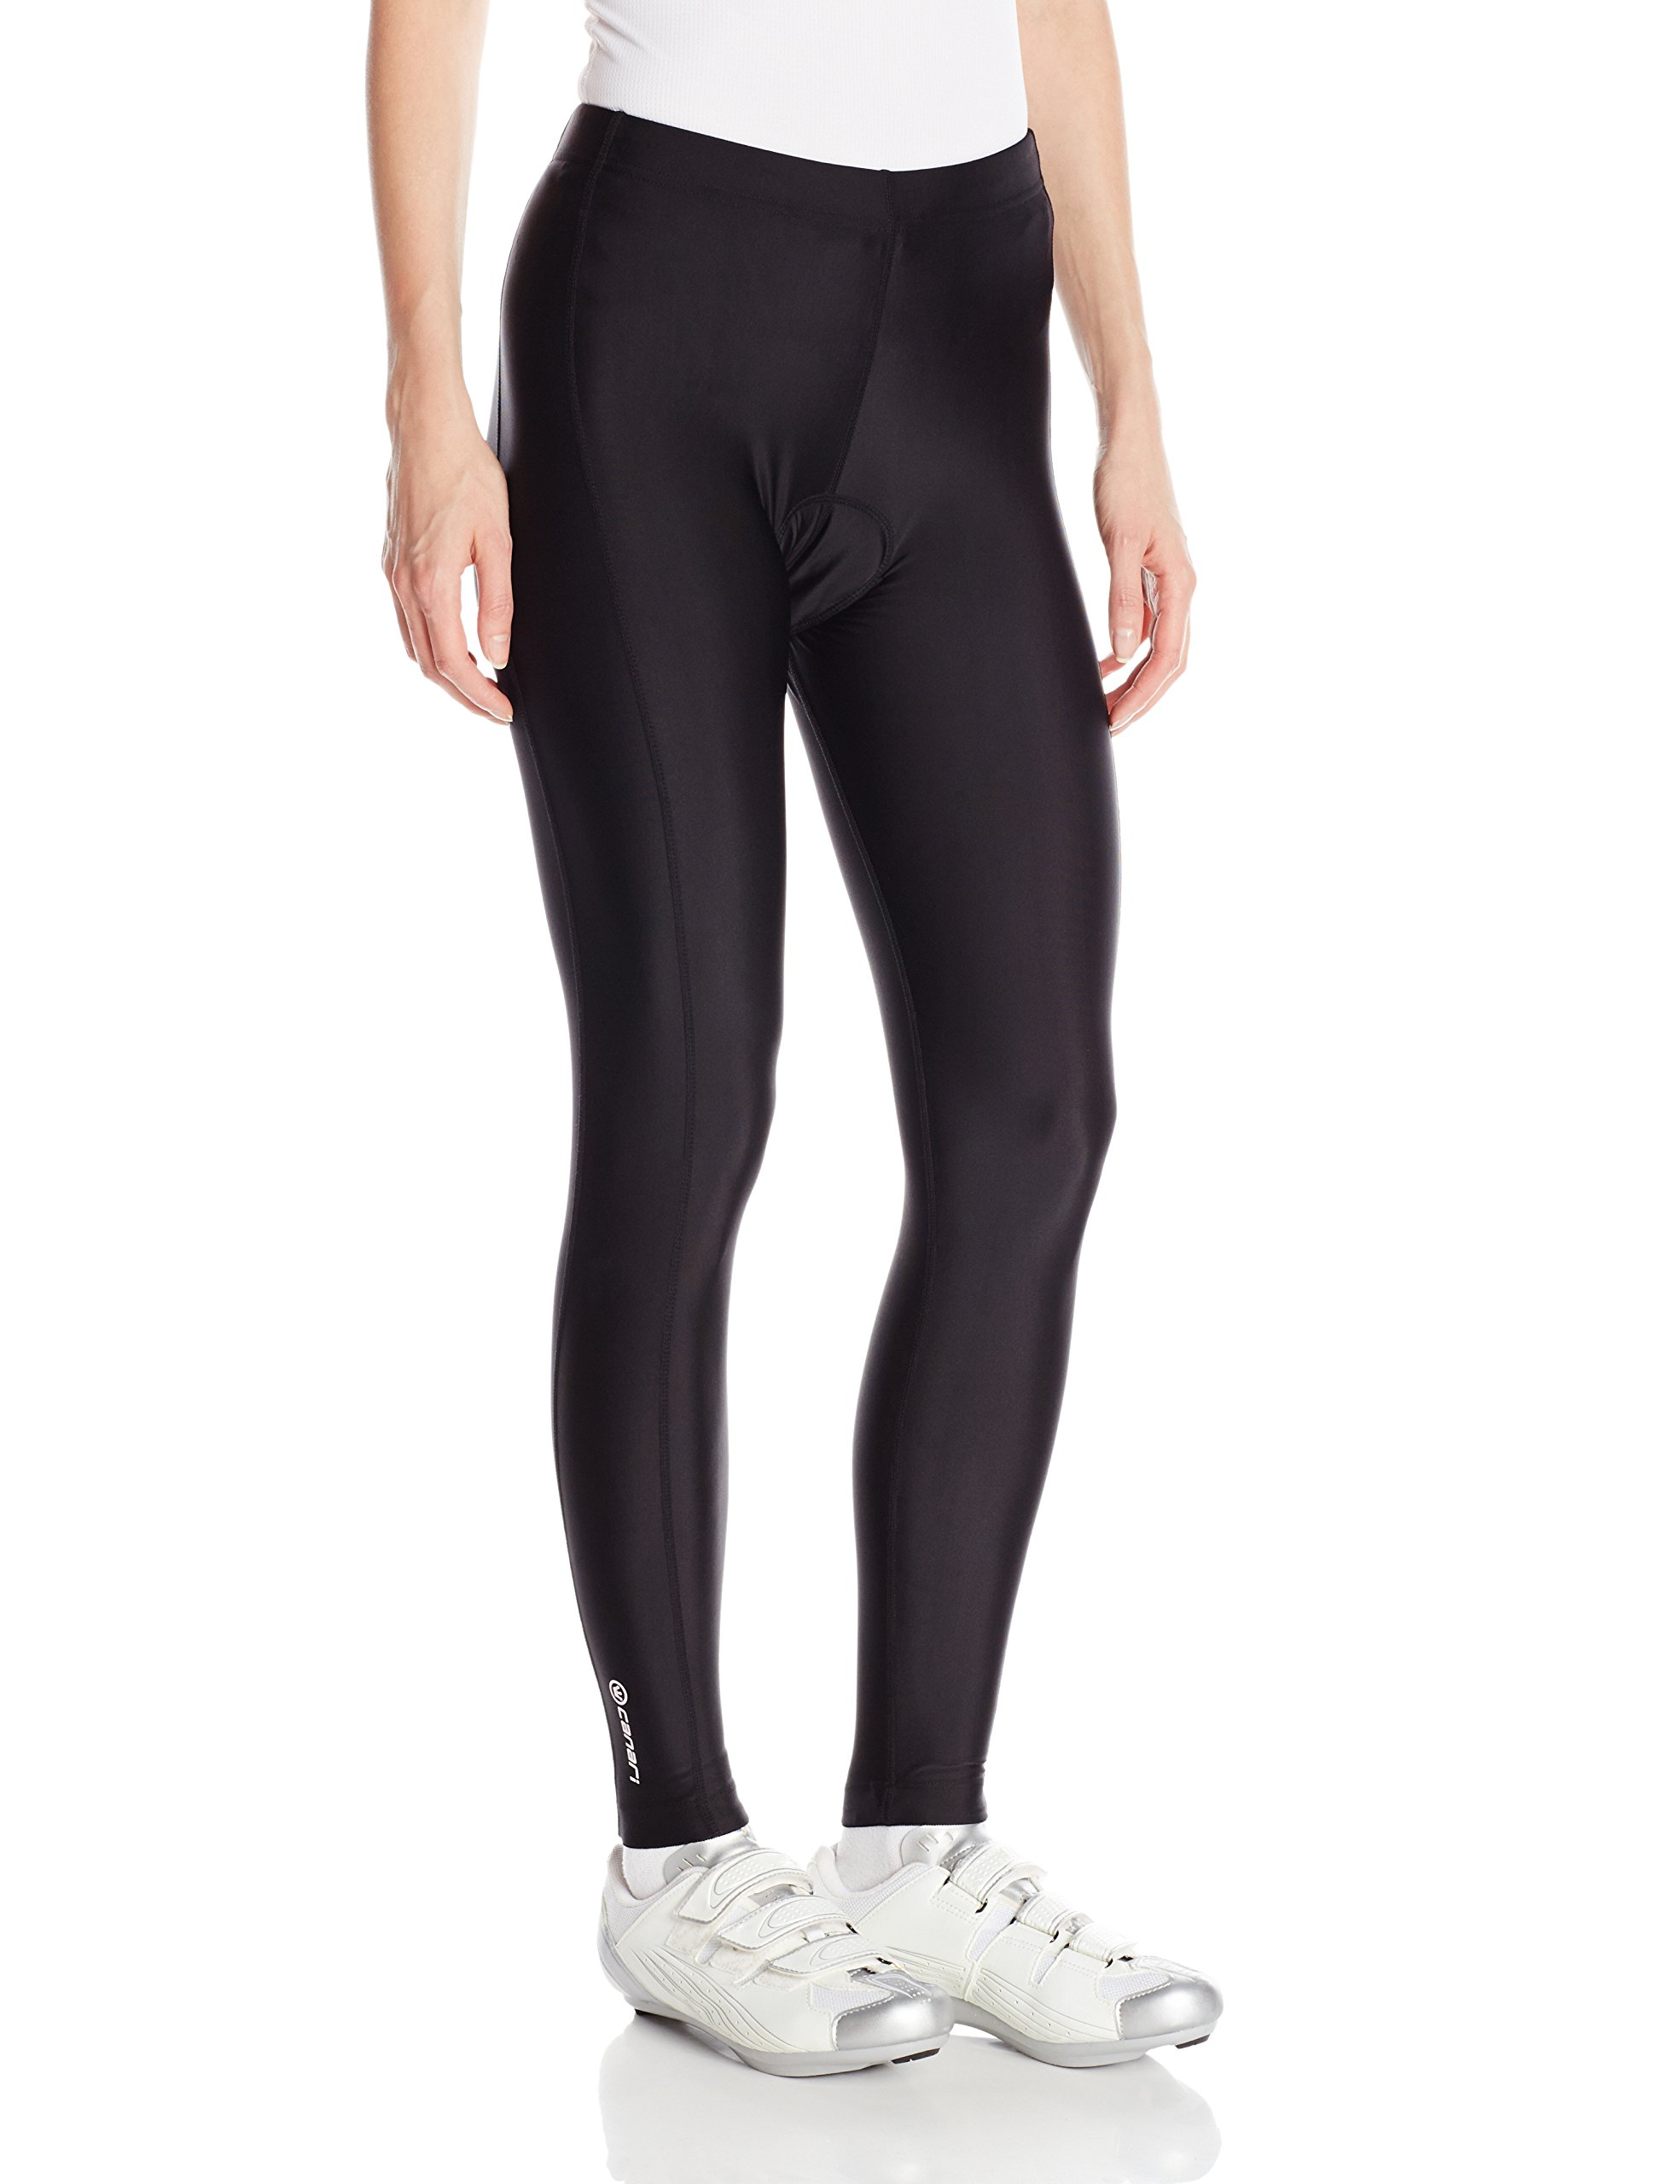 Canari Cyclewear Women's Pro Elite Tight Cycling Compression Tights, Small, Black